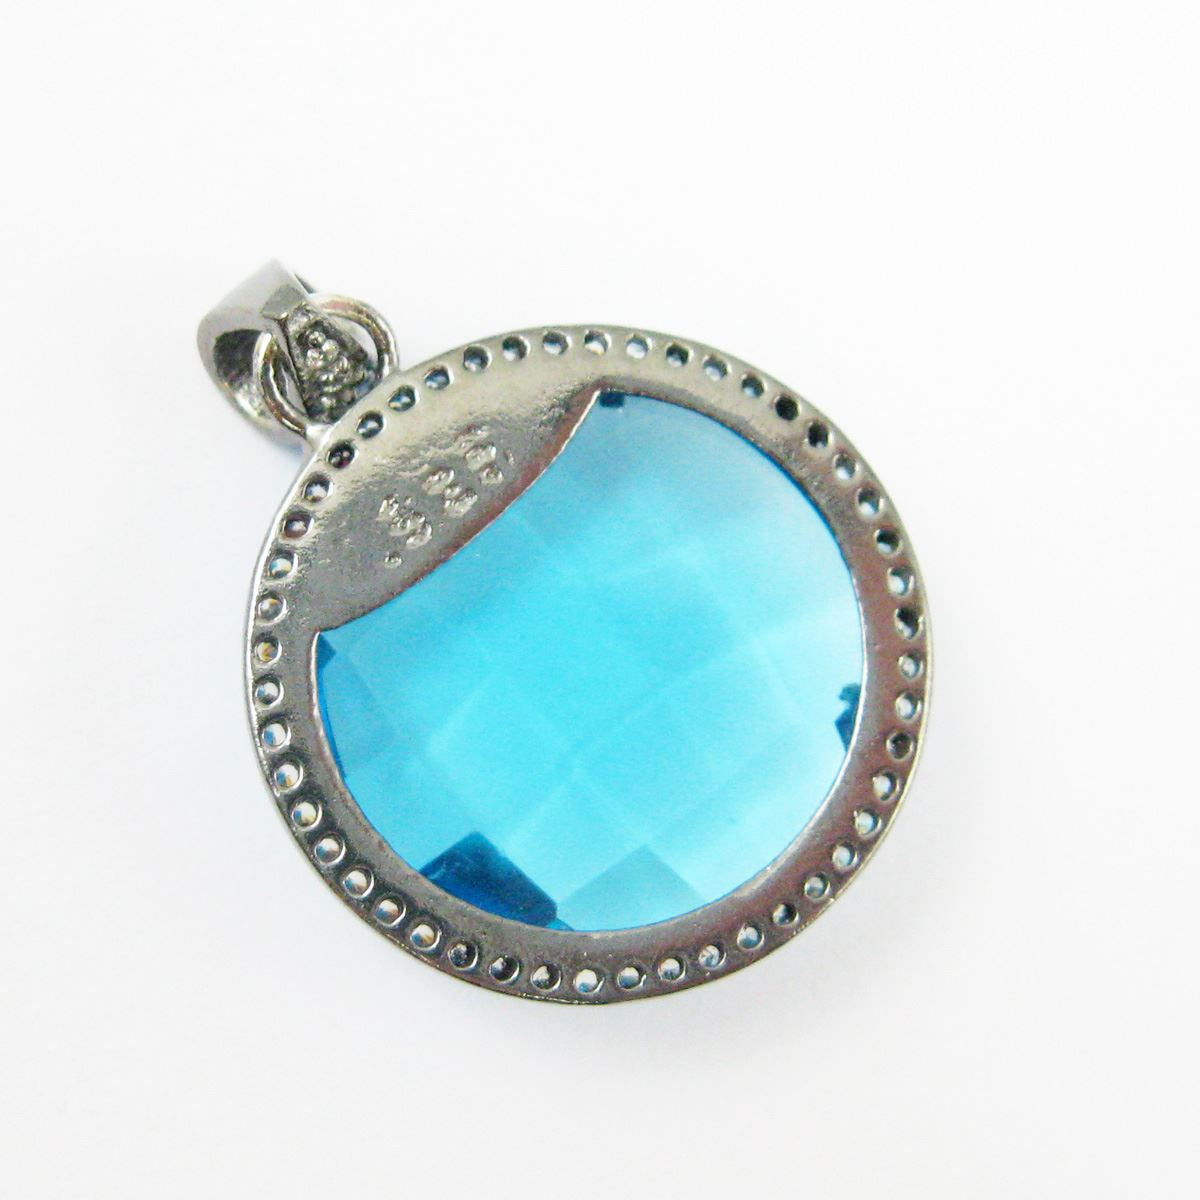 Oxidized Sterling Silver Pave Bezel Gemstone Pendant - Cubic Zirconia Pave Setting -  Round Faceted Stone-Blue Topaz Quartz - 21mm